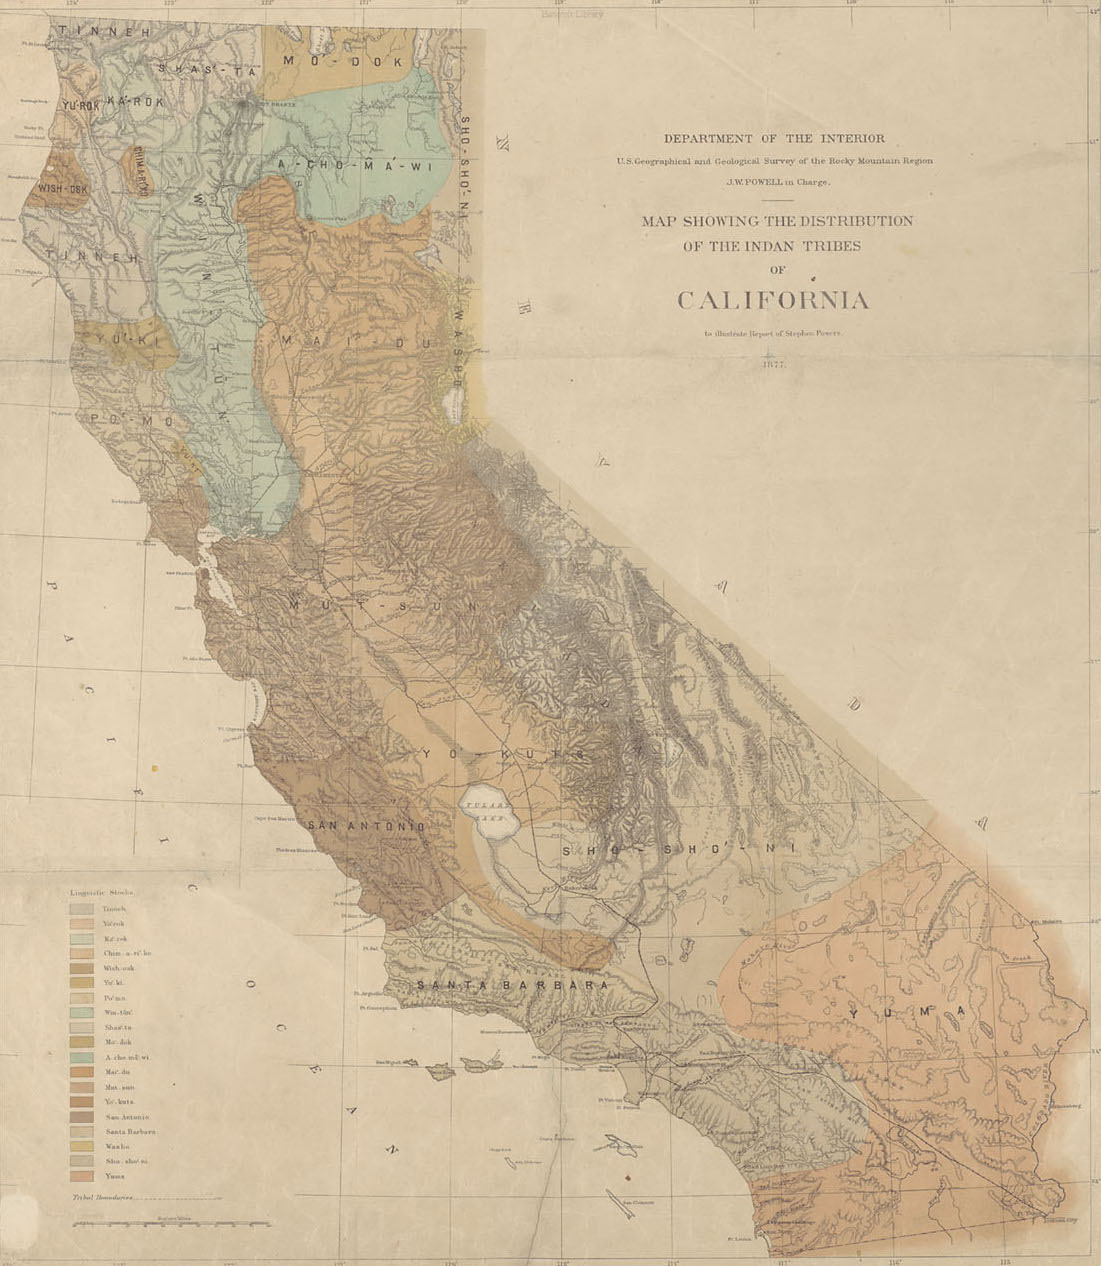 "G4361.E1 1877.G4 Case C, ""Map showing the distribution of the Indian tribes in California, Map showing the distribution of the Indian tribes in California."""